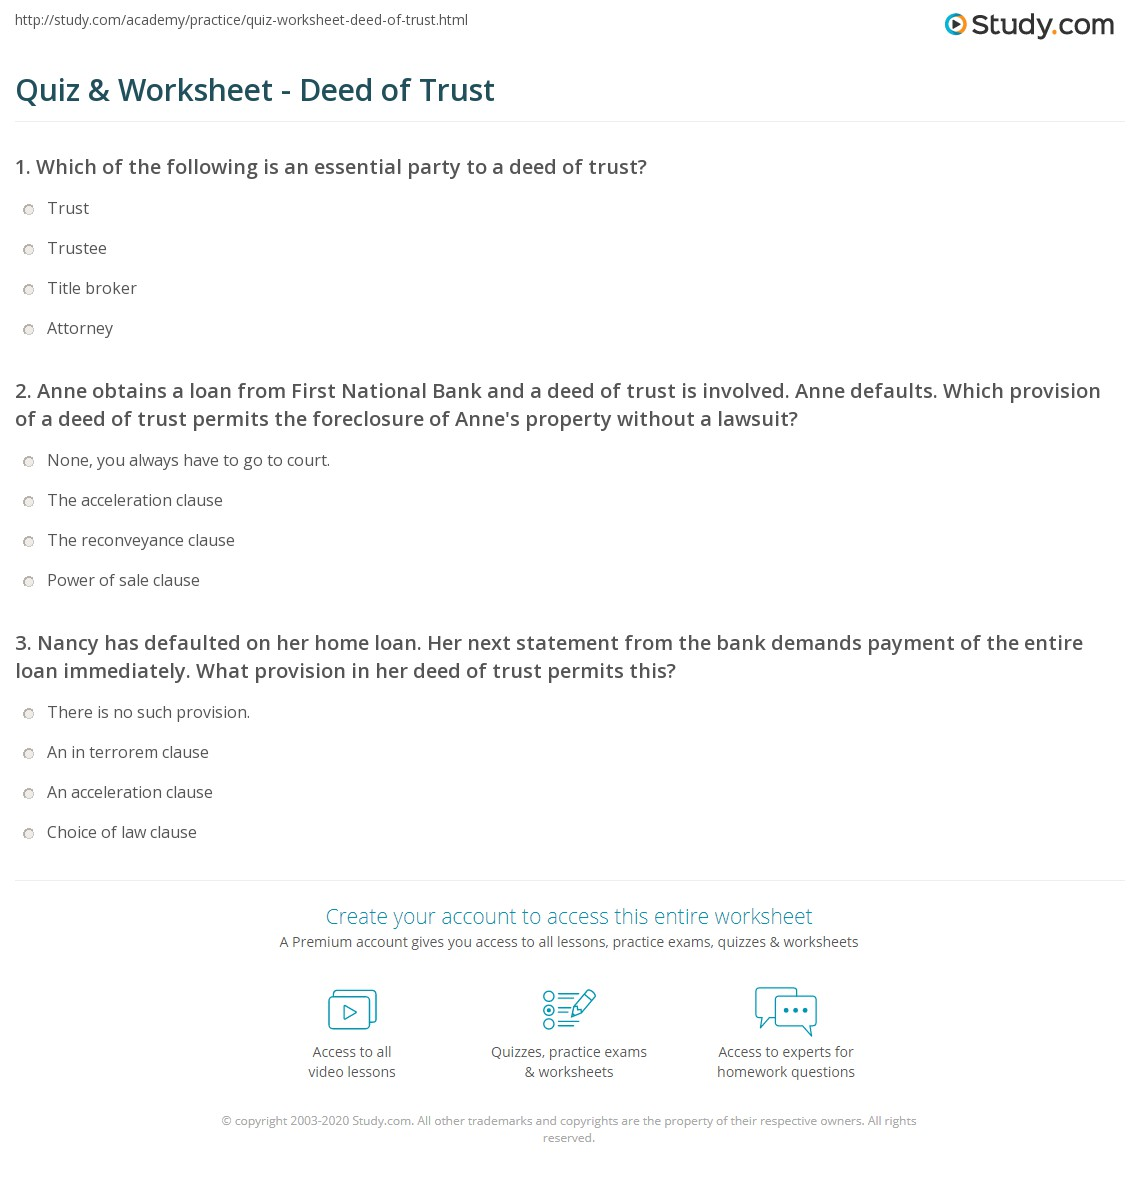 quiz & worksheet - deed of trust | study